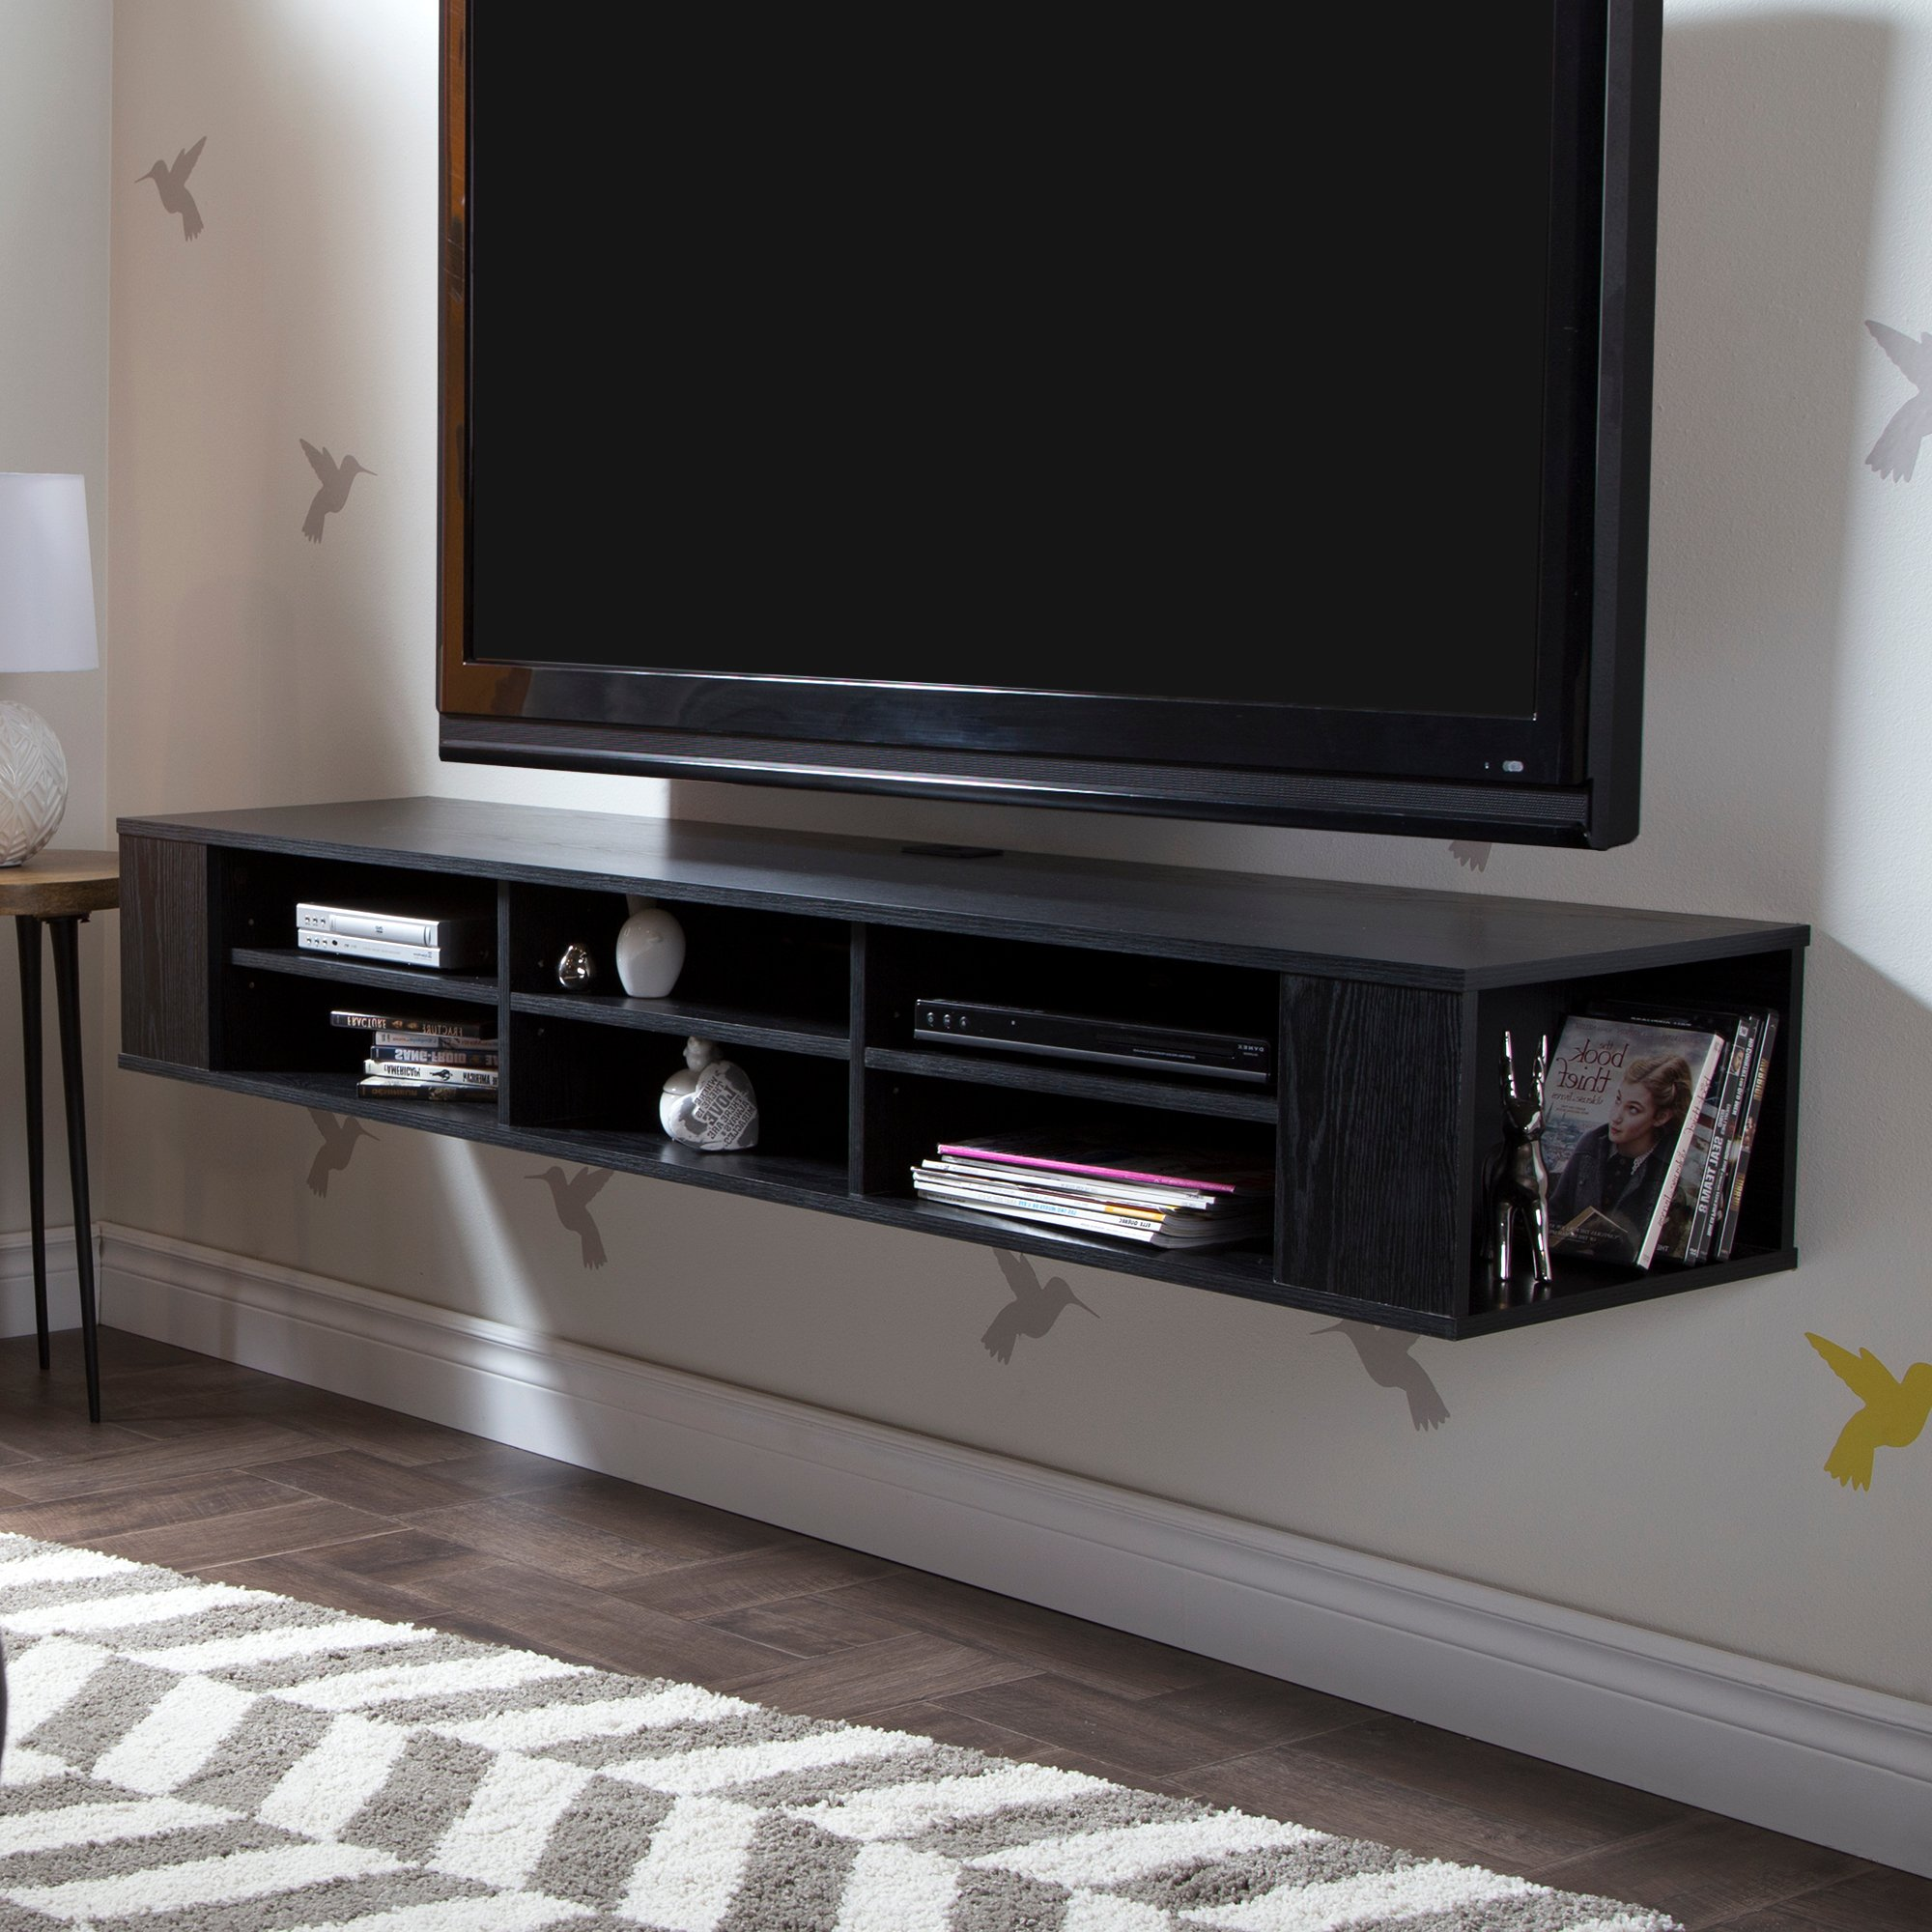 "City Life Wall Mounted Media Console - 66"" Wide - Extra Storage - Black Oak - By South Shore"